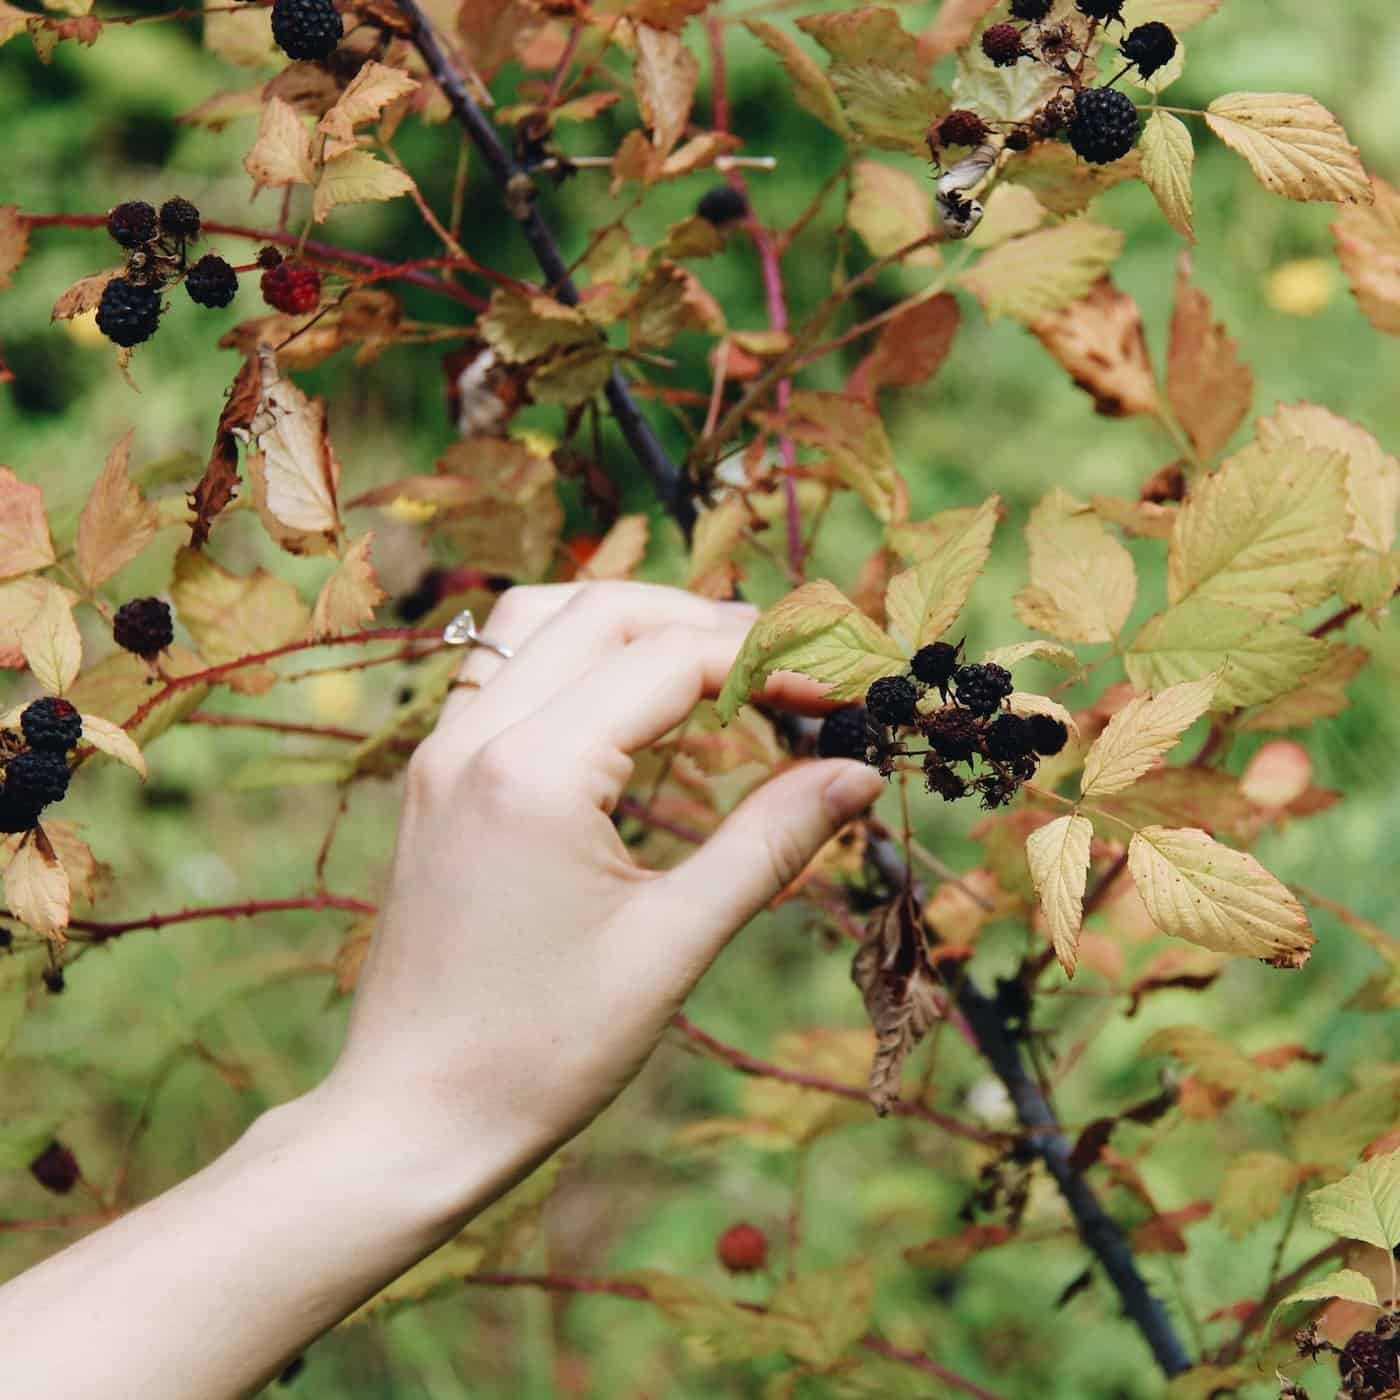 Hand harvesting berries in a permaculture garden